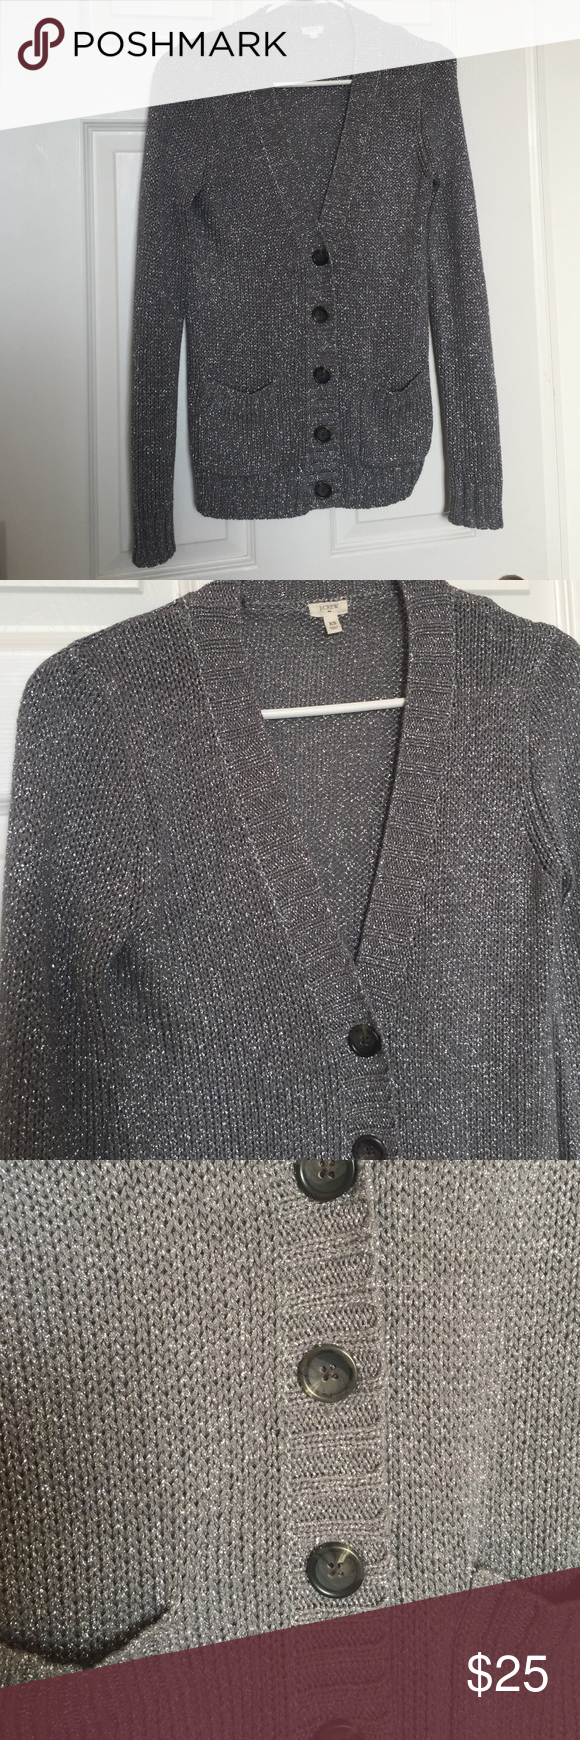 J. Crew metallic cardigan sweater This sweater is in excellent condition! 2 front pockets. Longer length. Cable knit. 82% rayon 18% metallic. Smoke free pet free home. J. Crew Sweaters Cardigans